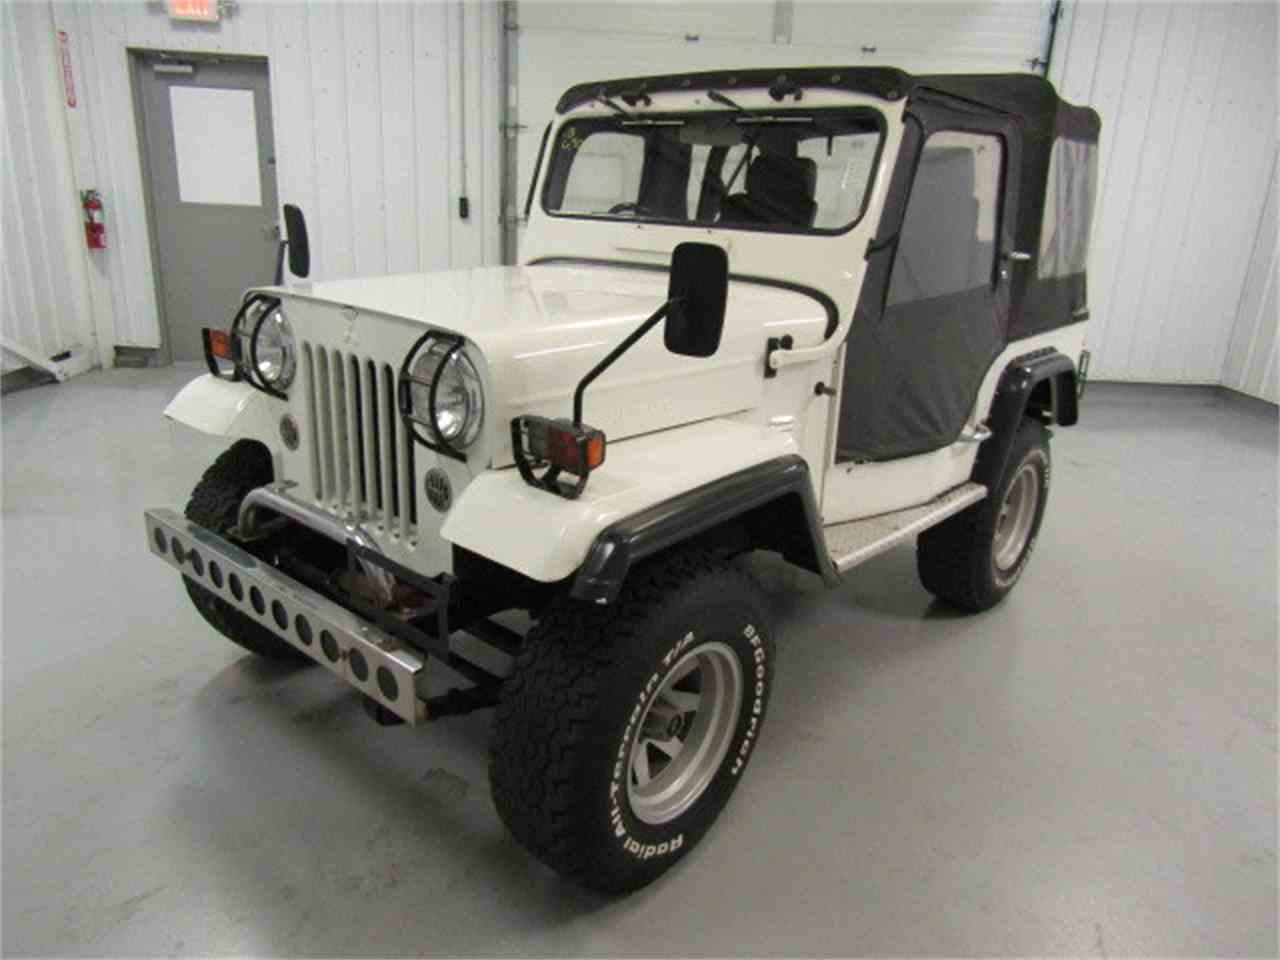 Large Picture of '91 Jeep located in Virginia - $6,900.00 - KF6X